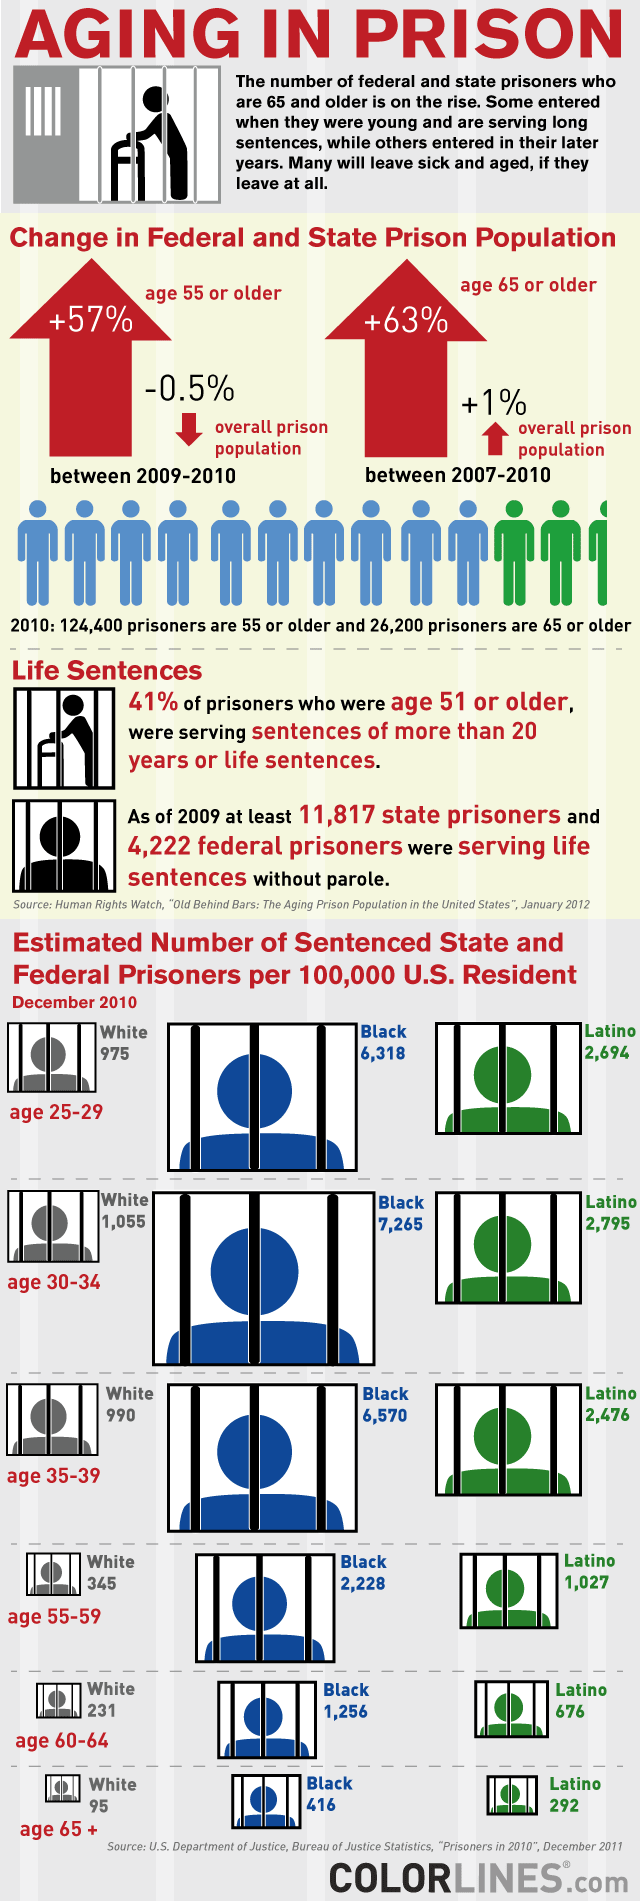 Aging in Prison [Source - Colorlines]